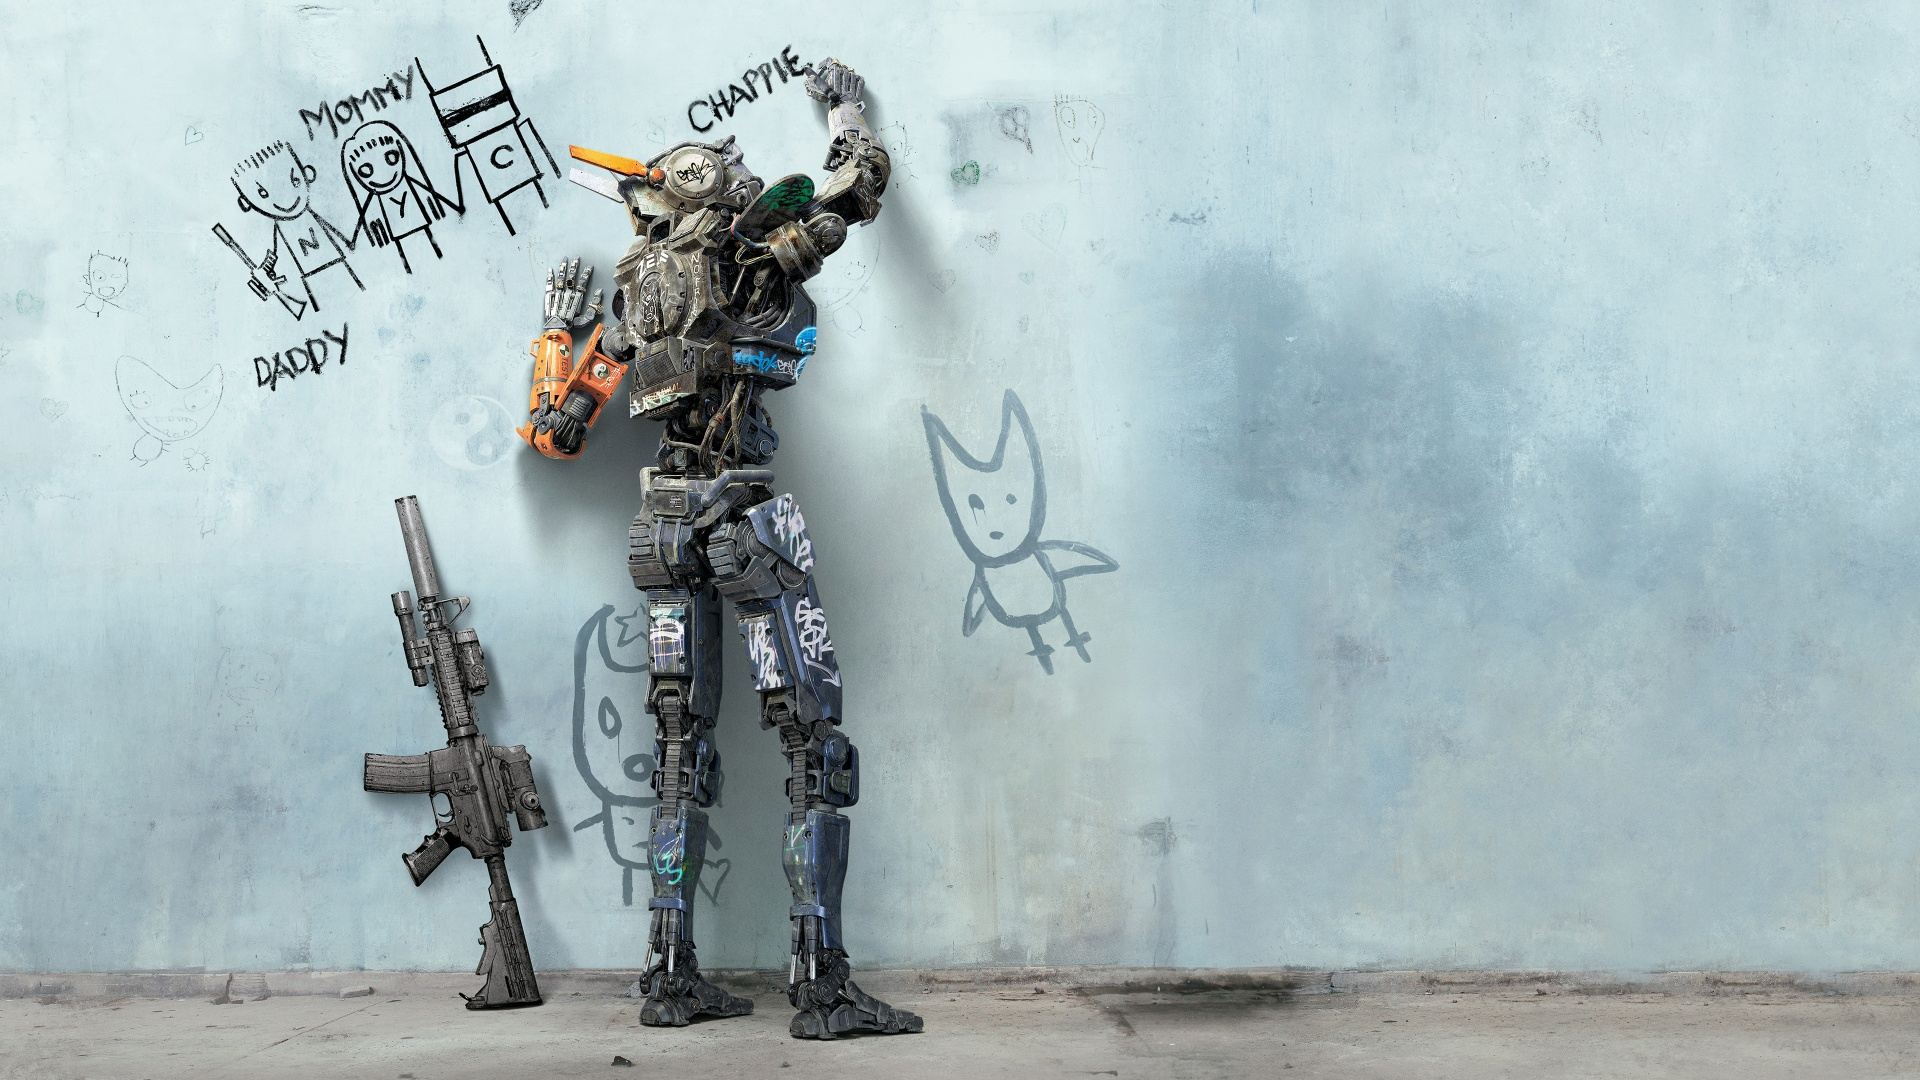 chappie-robot-rifle-movie-writing-wall-4k-wallpaper-1920x1080